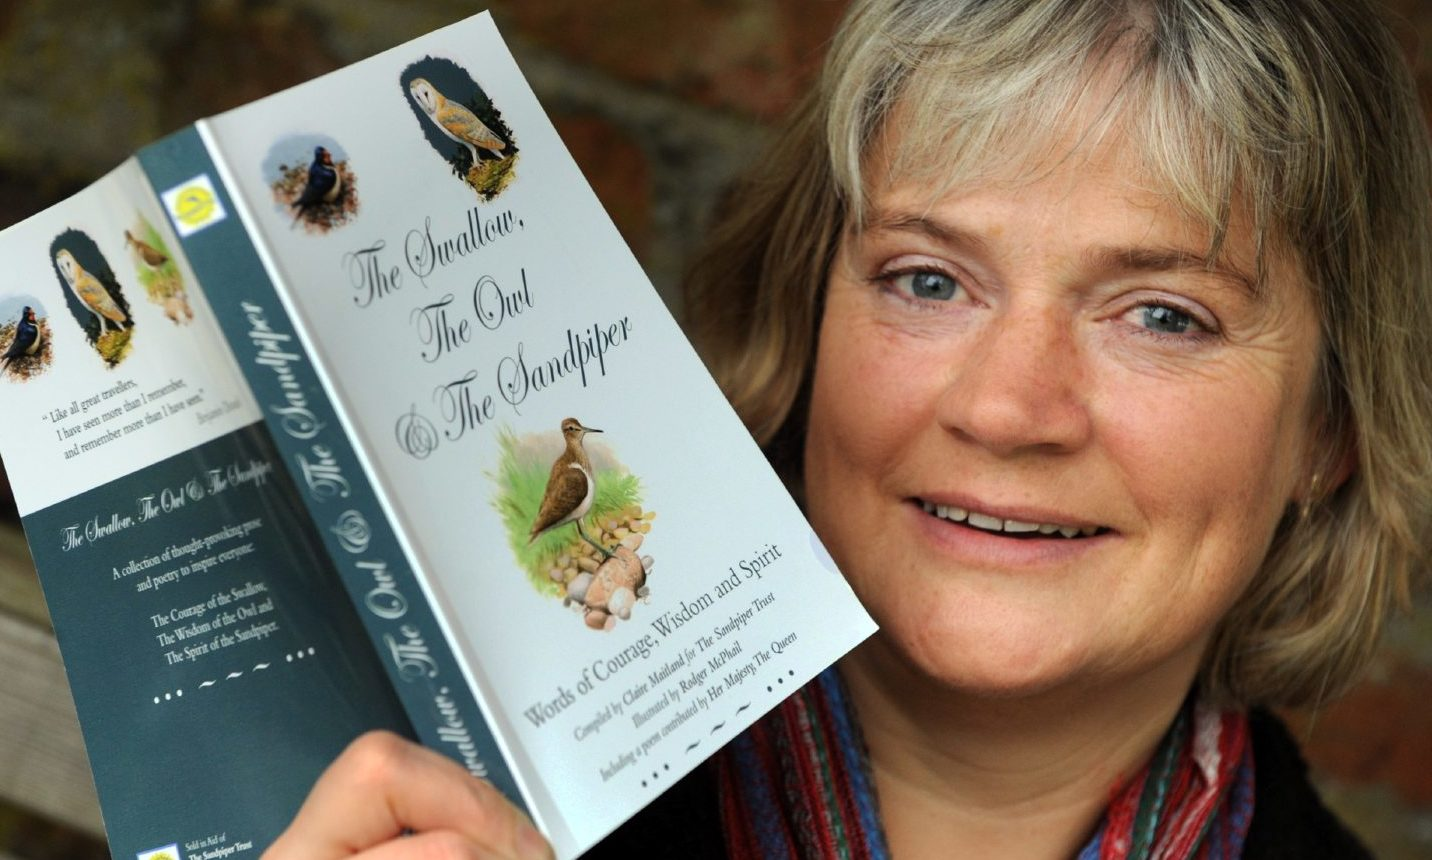 Mrs Maitland published The Swallow, The Owl And The Sandpiper in 2009.